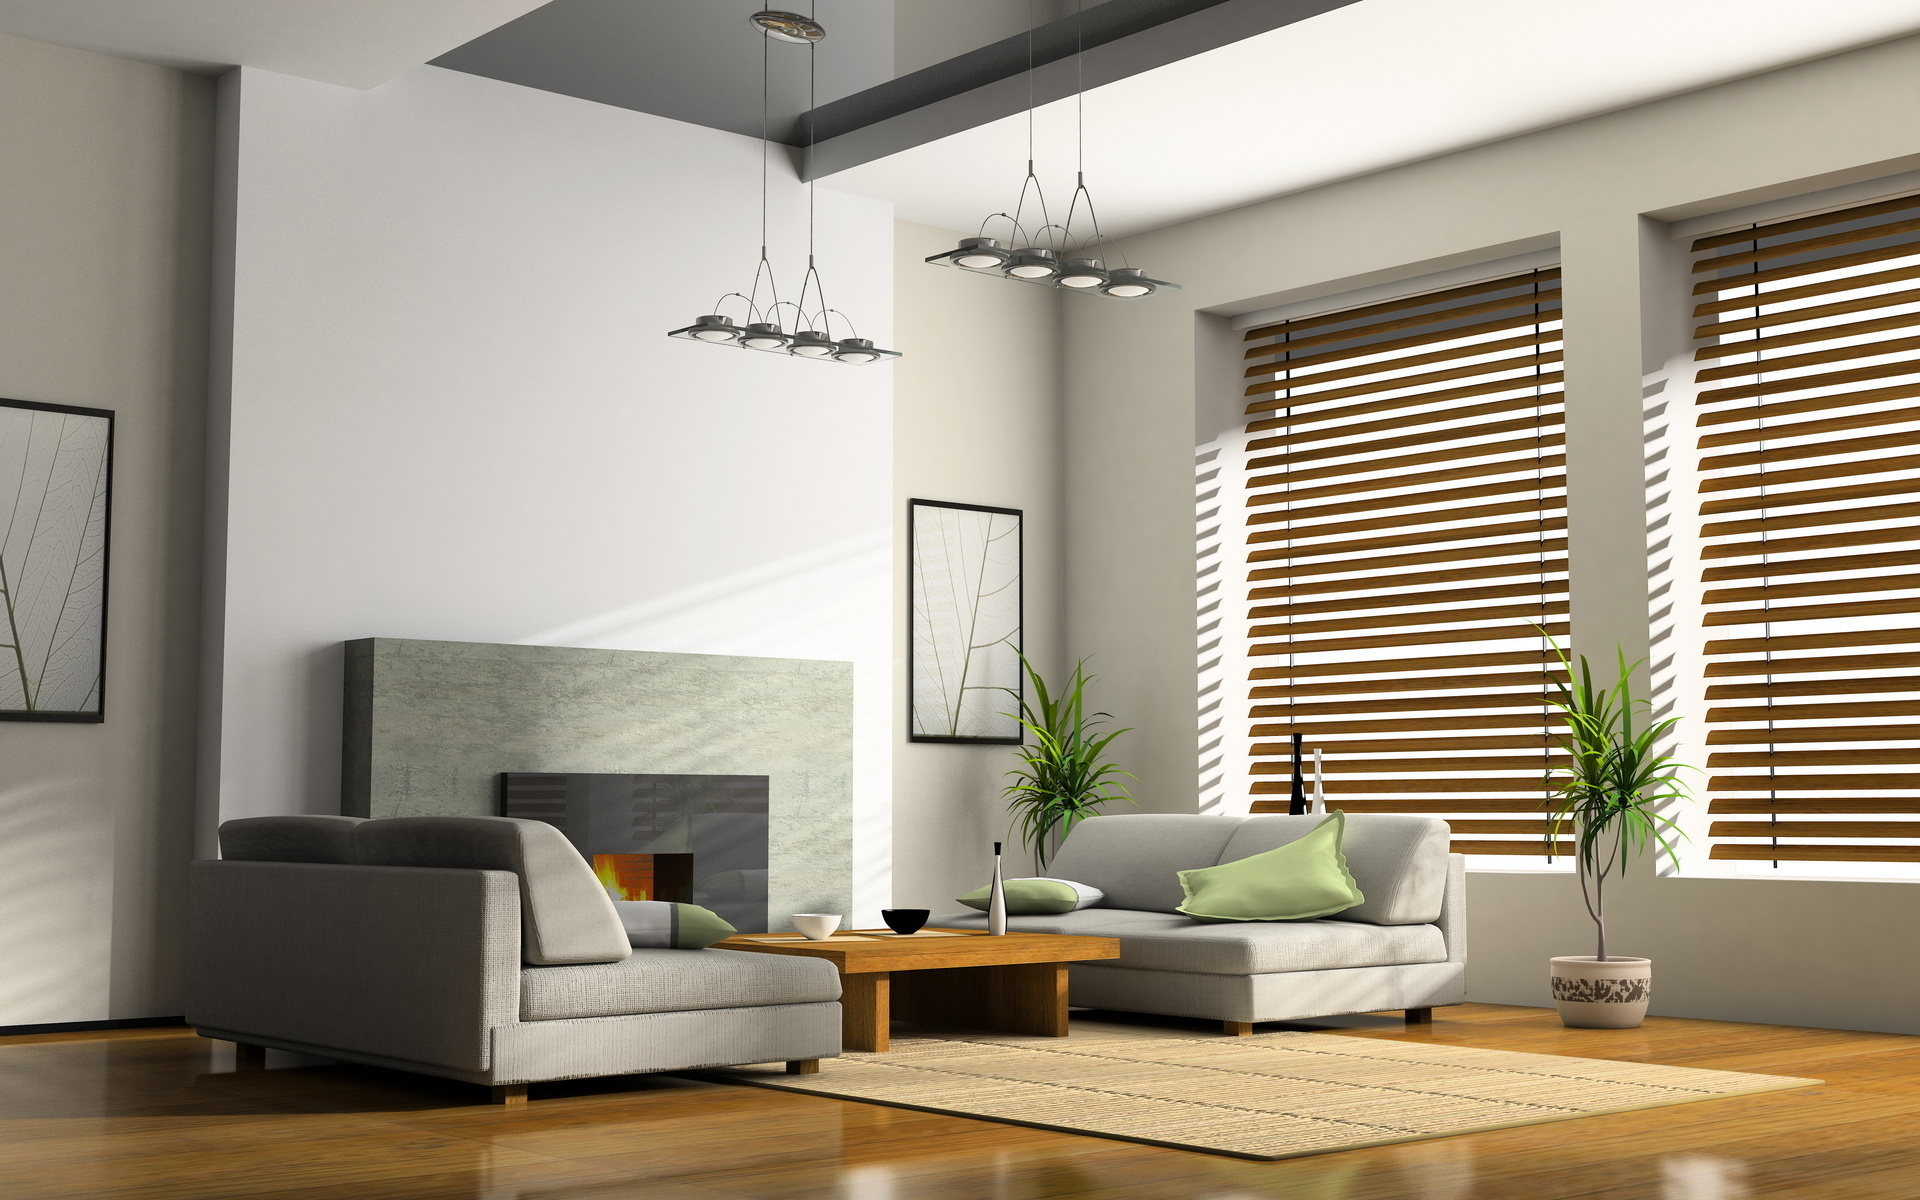 3d interior design desktop wallpaper 60899 1920x1200 px for 3d wallpapers for home interiors